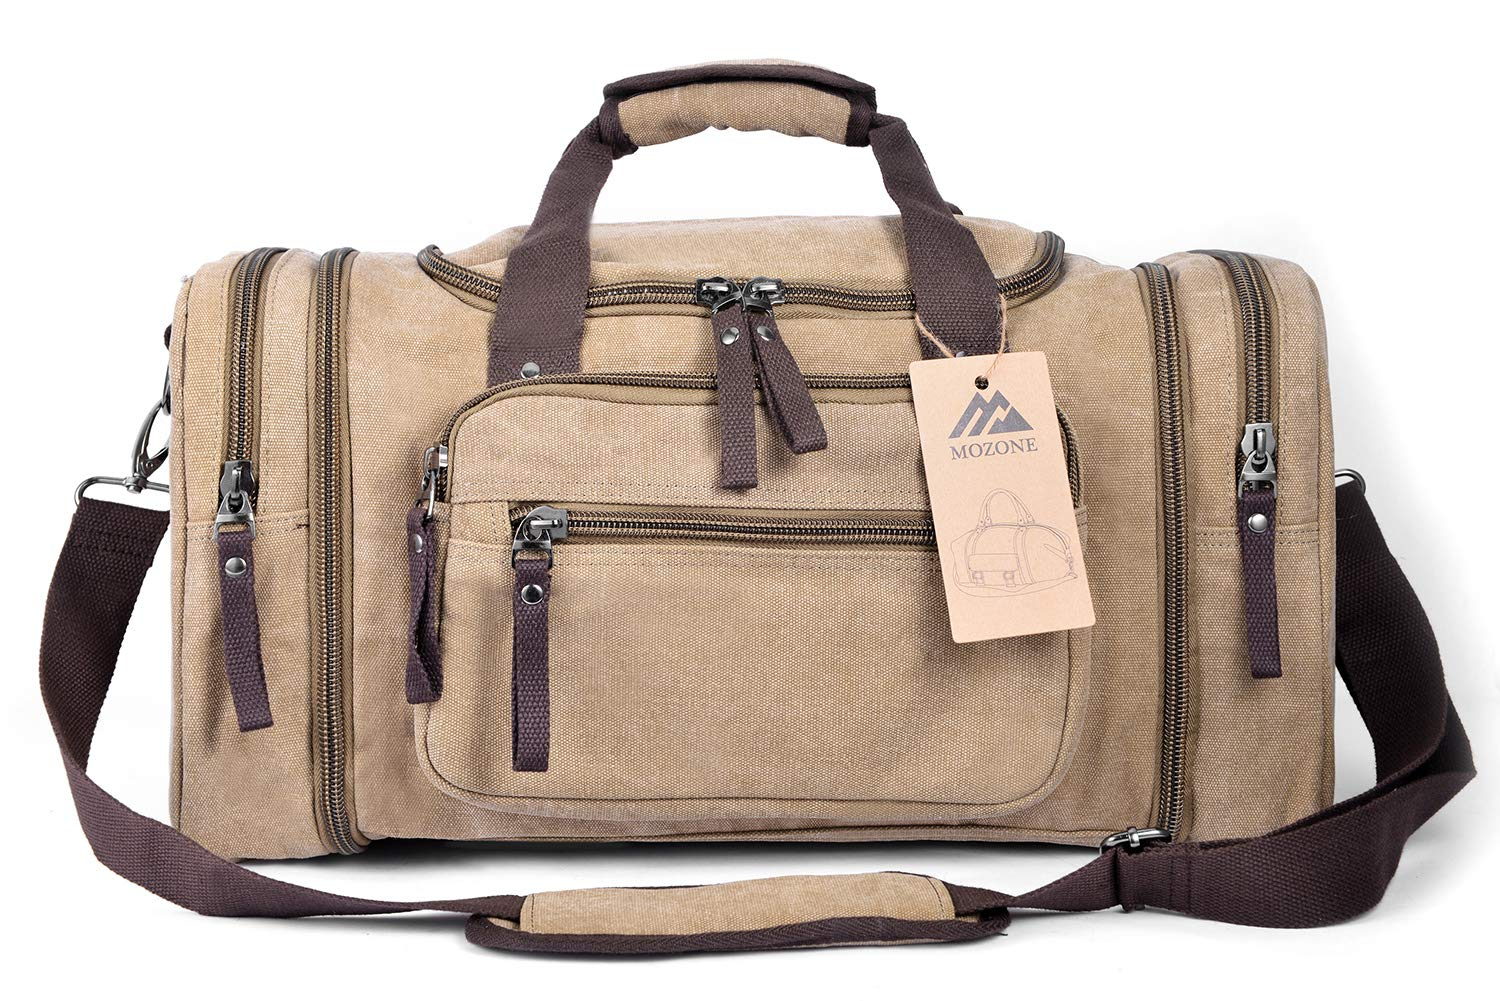 Mozone Unisexs Canvas Duffel Bag Oversized Travel Tote Luggage Bag Coffee